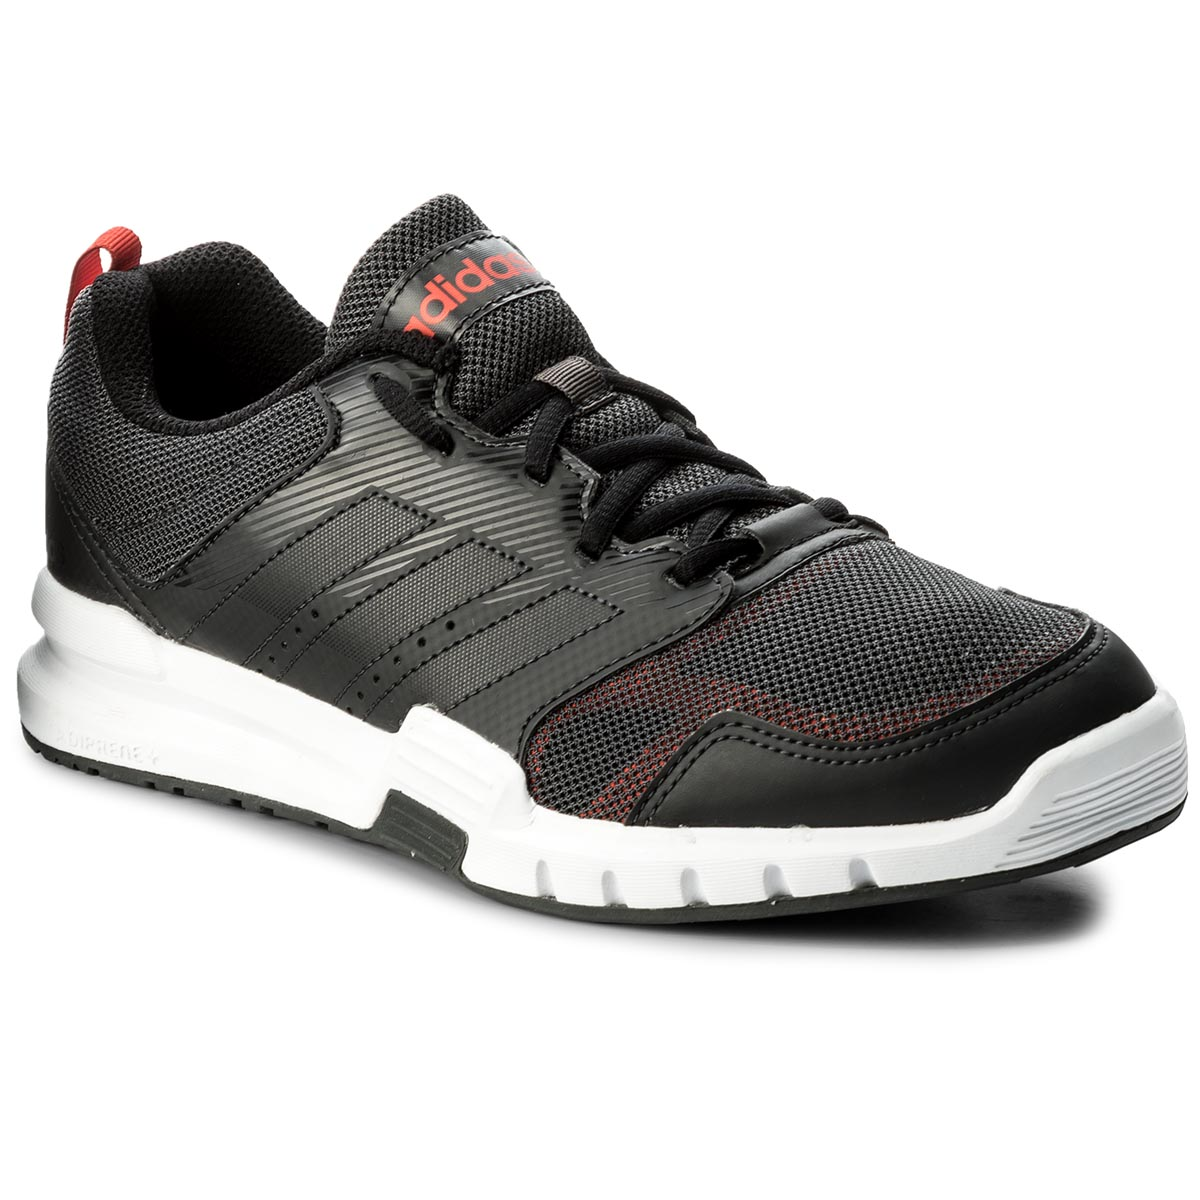 Buty adidas - Essential Star 3 M CG3512 Carbon/Cblack/Hirere